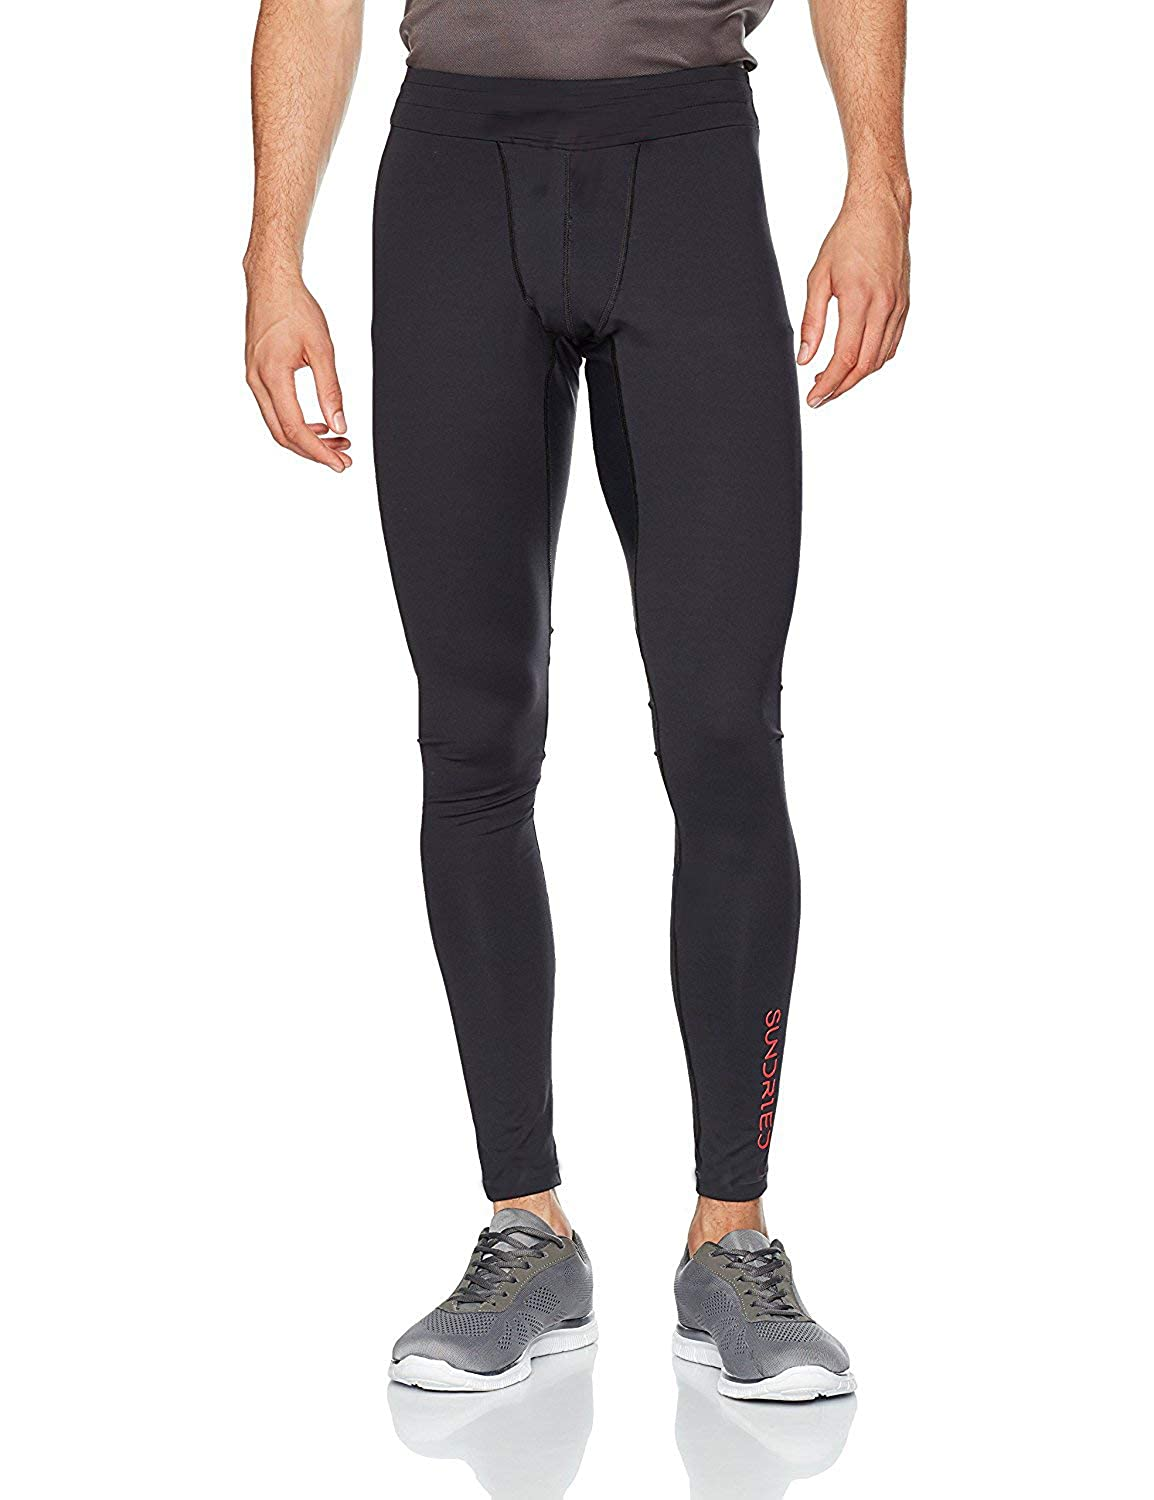 d25daab009a6 Sundried Mens Pro Running Gym Leggings For Performance Sports Fitness  Workout Wear Athletic Tights: Amazon.co.uk: Clothing